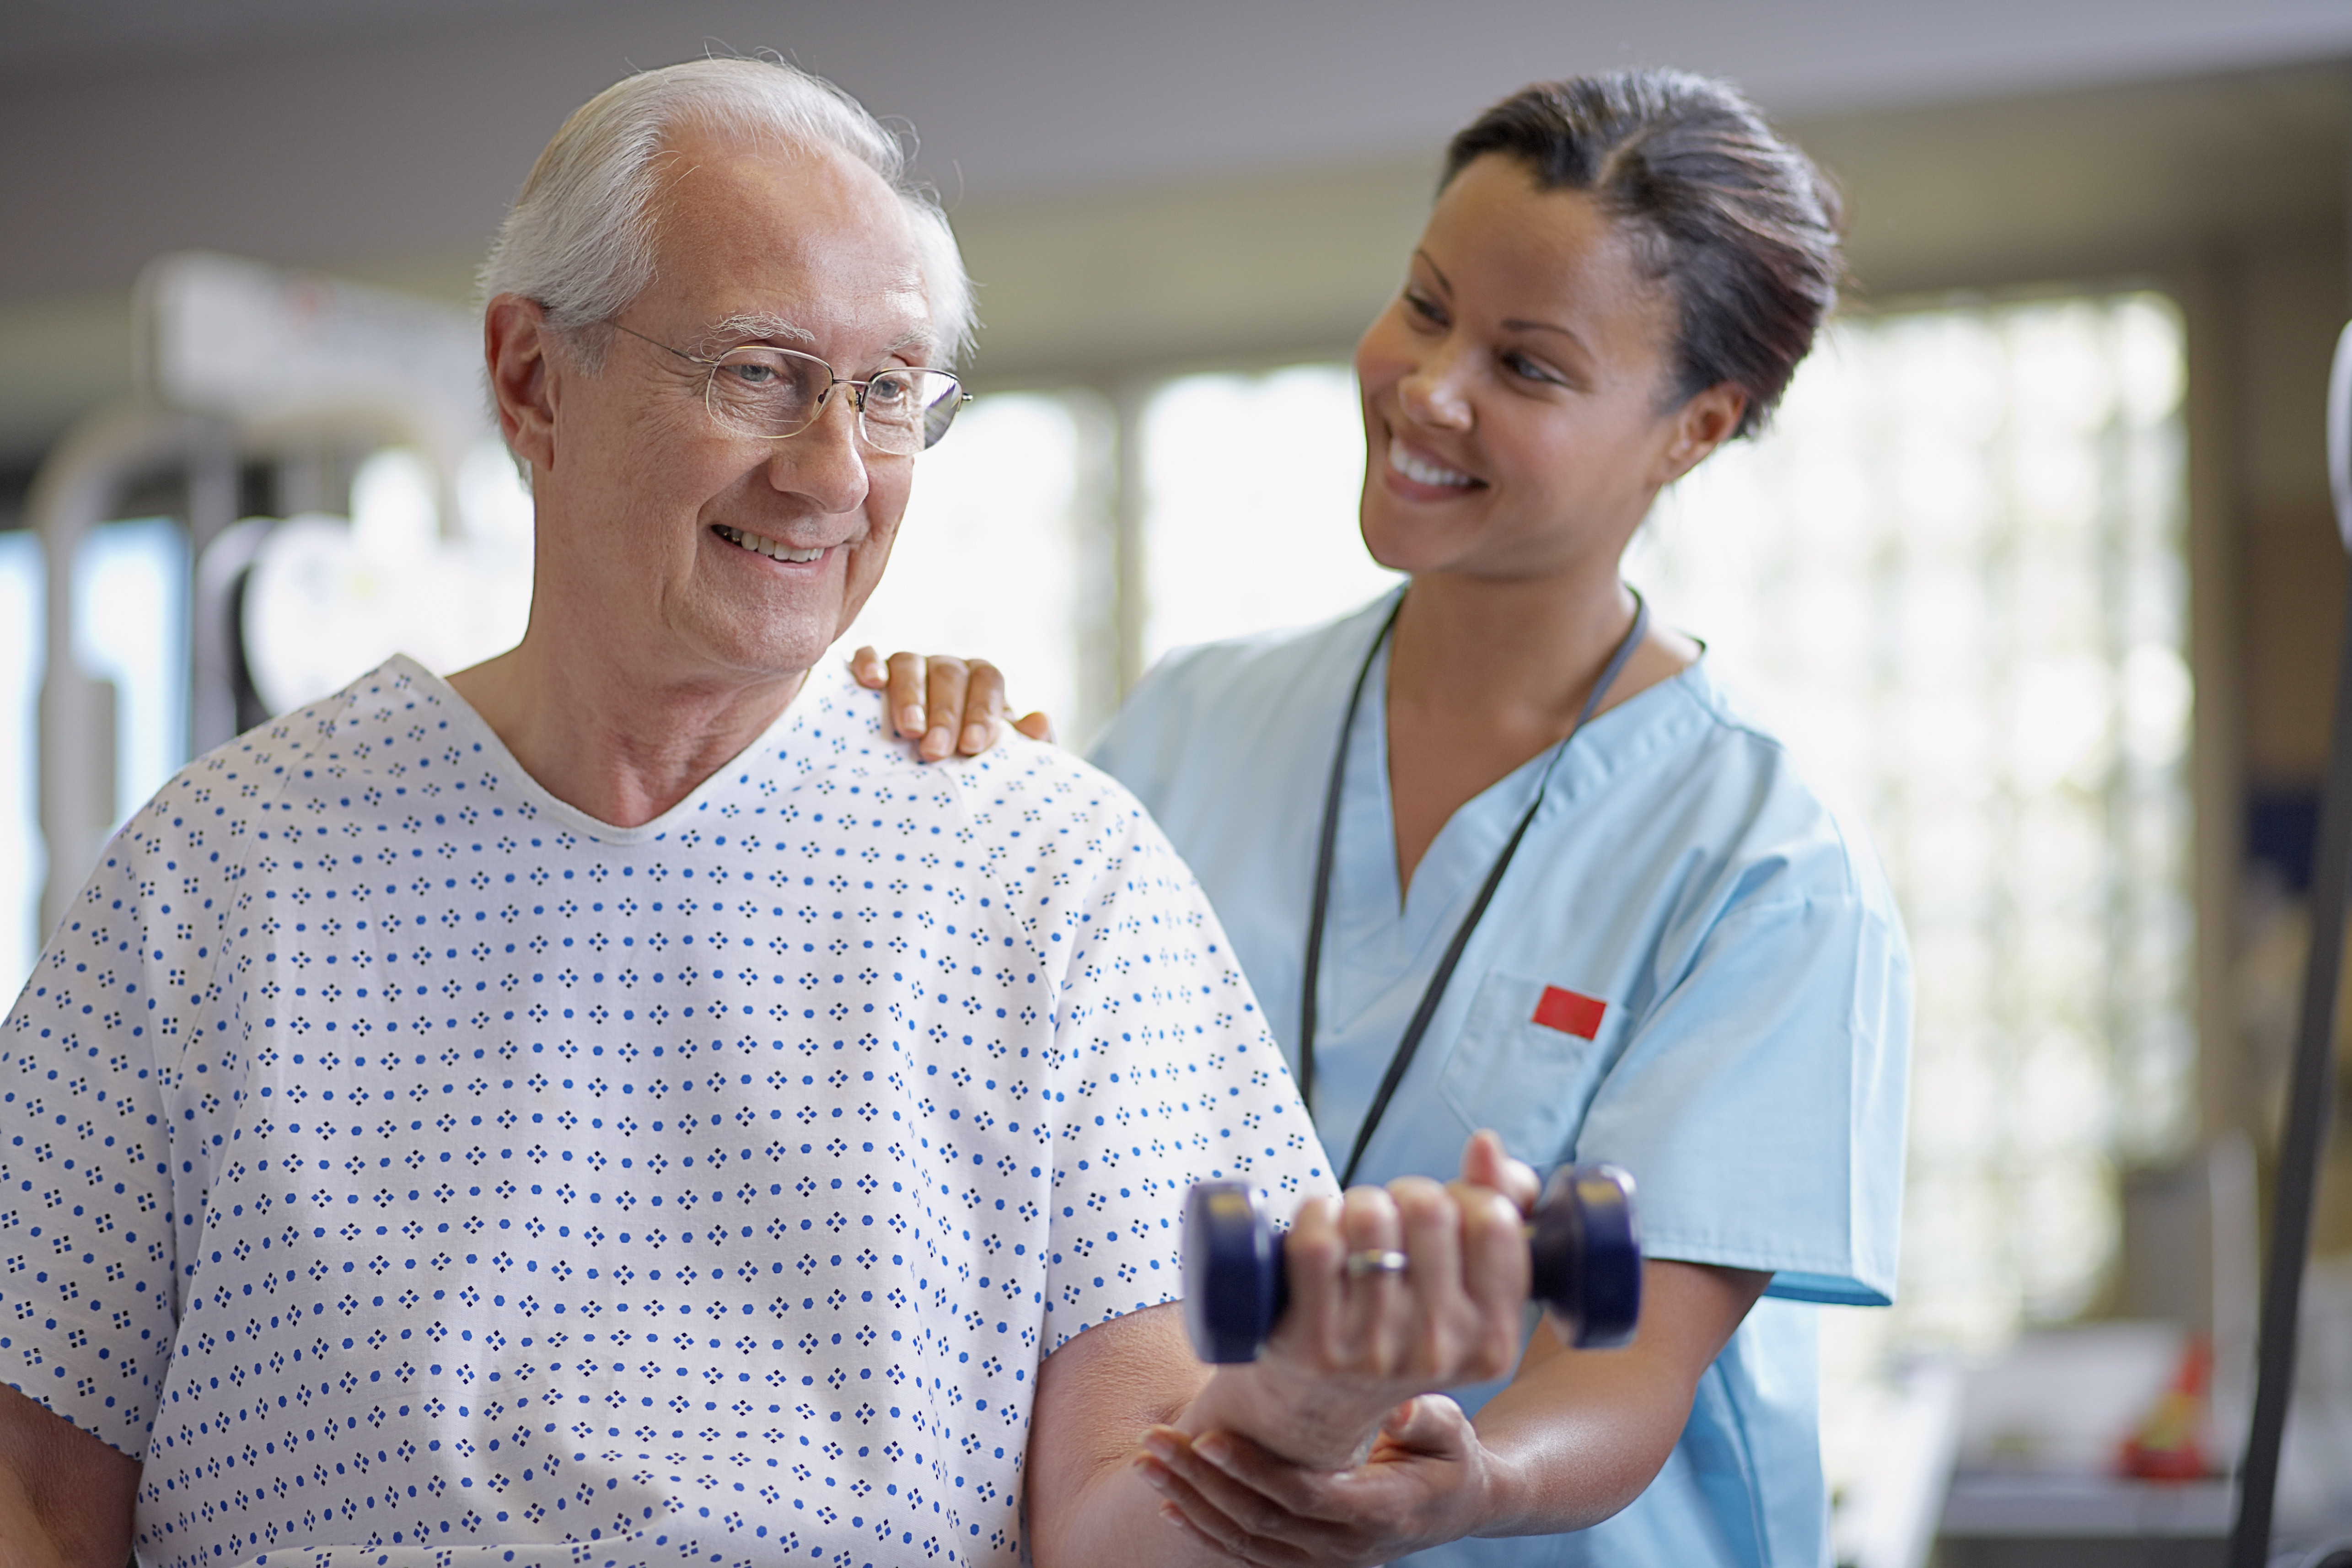 challenges in caring for dementia patients Ethical issues in caring for patients with dementia ethical issues in caring for patients with dementia 0 portfolio learning journals cancer nursing.